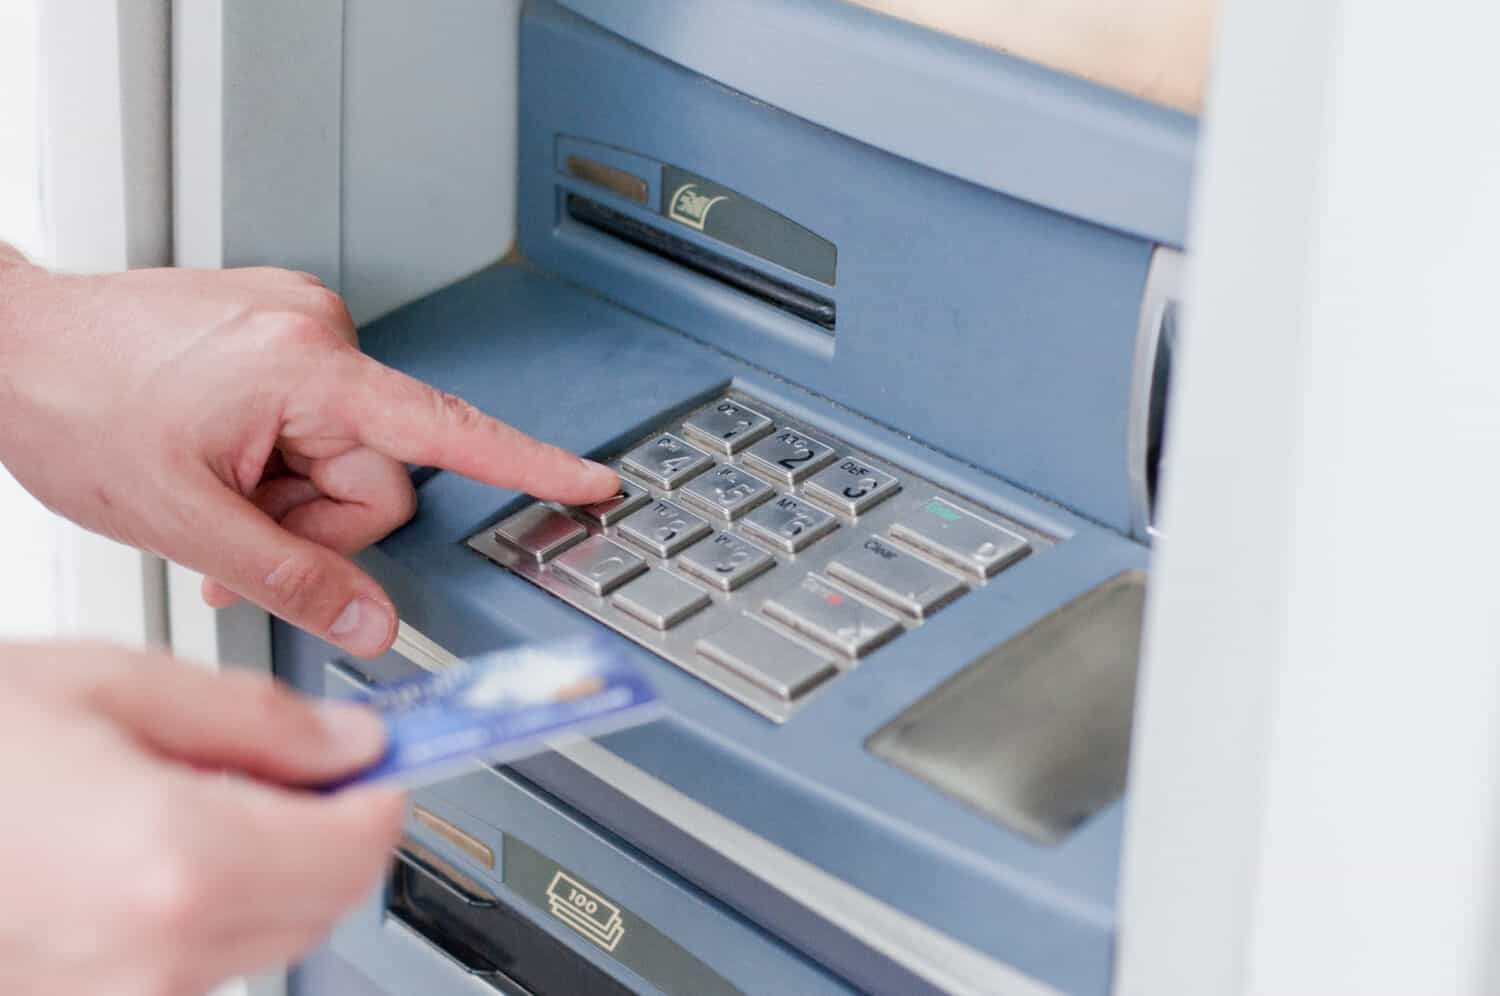 ATMs are just one method of banking in today's technology-driven world